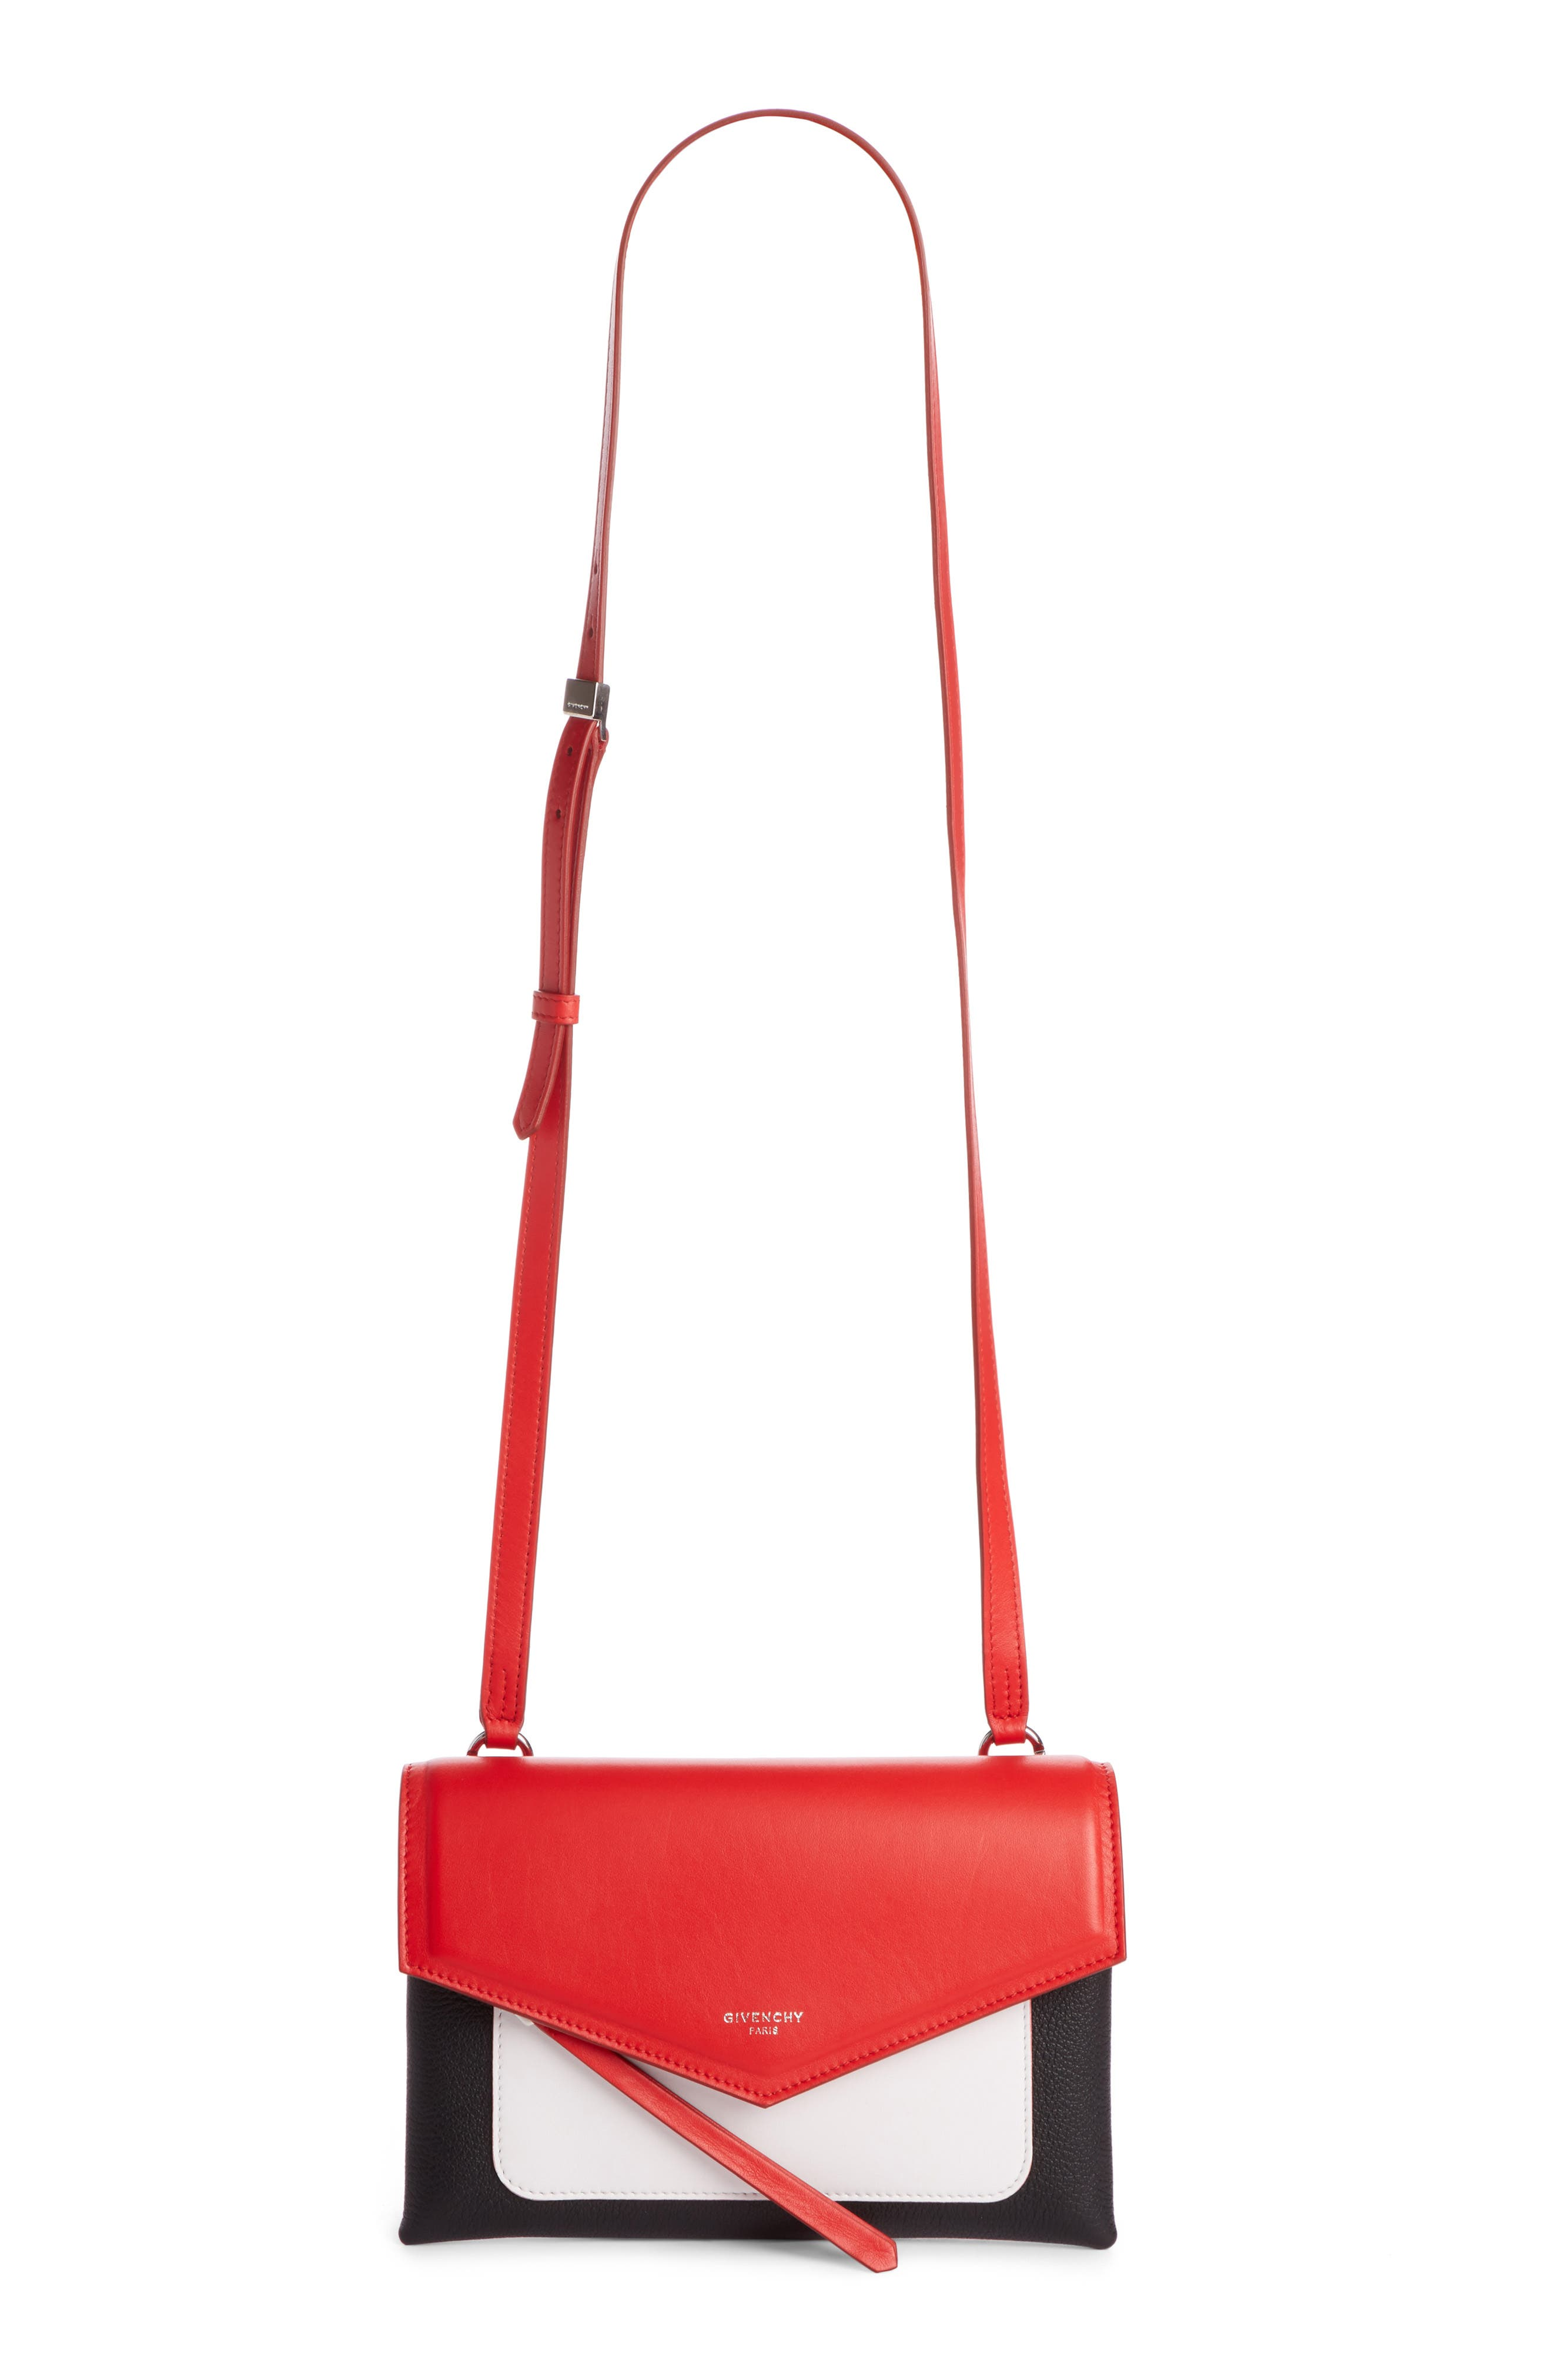 Duetto Tricolor Leather Flap Crossbody Bag,                         Main,                         color, Red/ Black